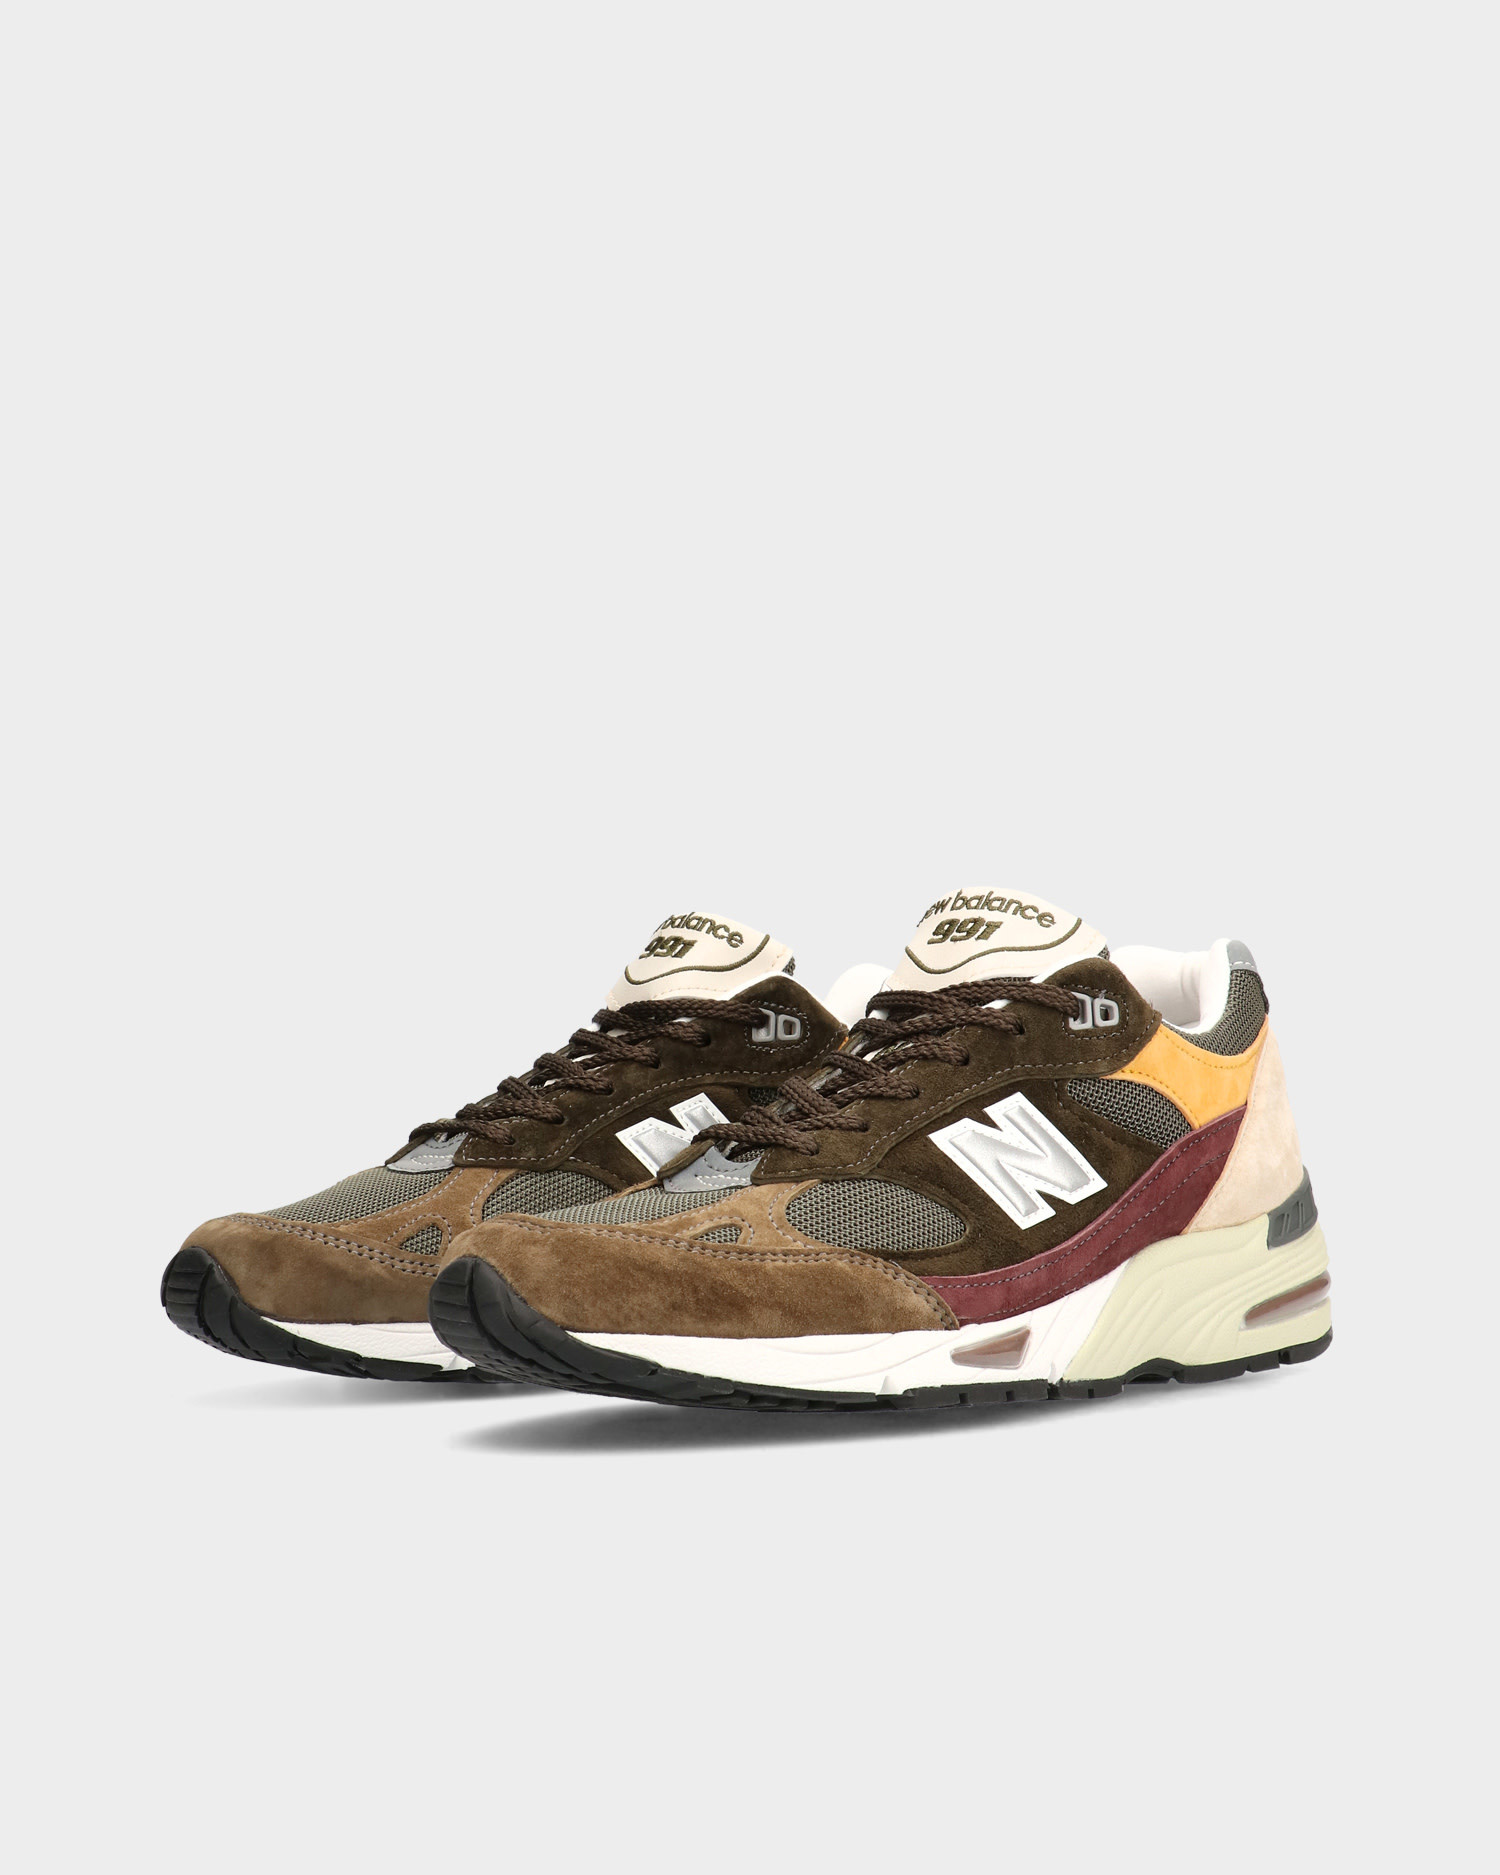 New Balance M991GYB Made in England Desaturated Pack Green/Yellow/Brown